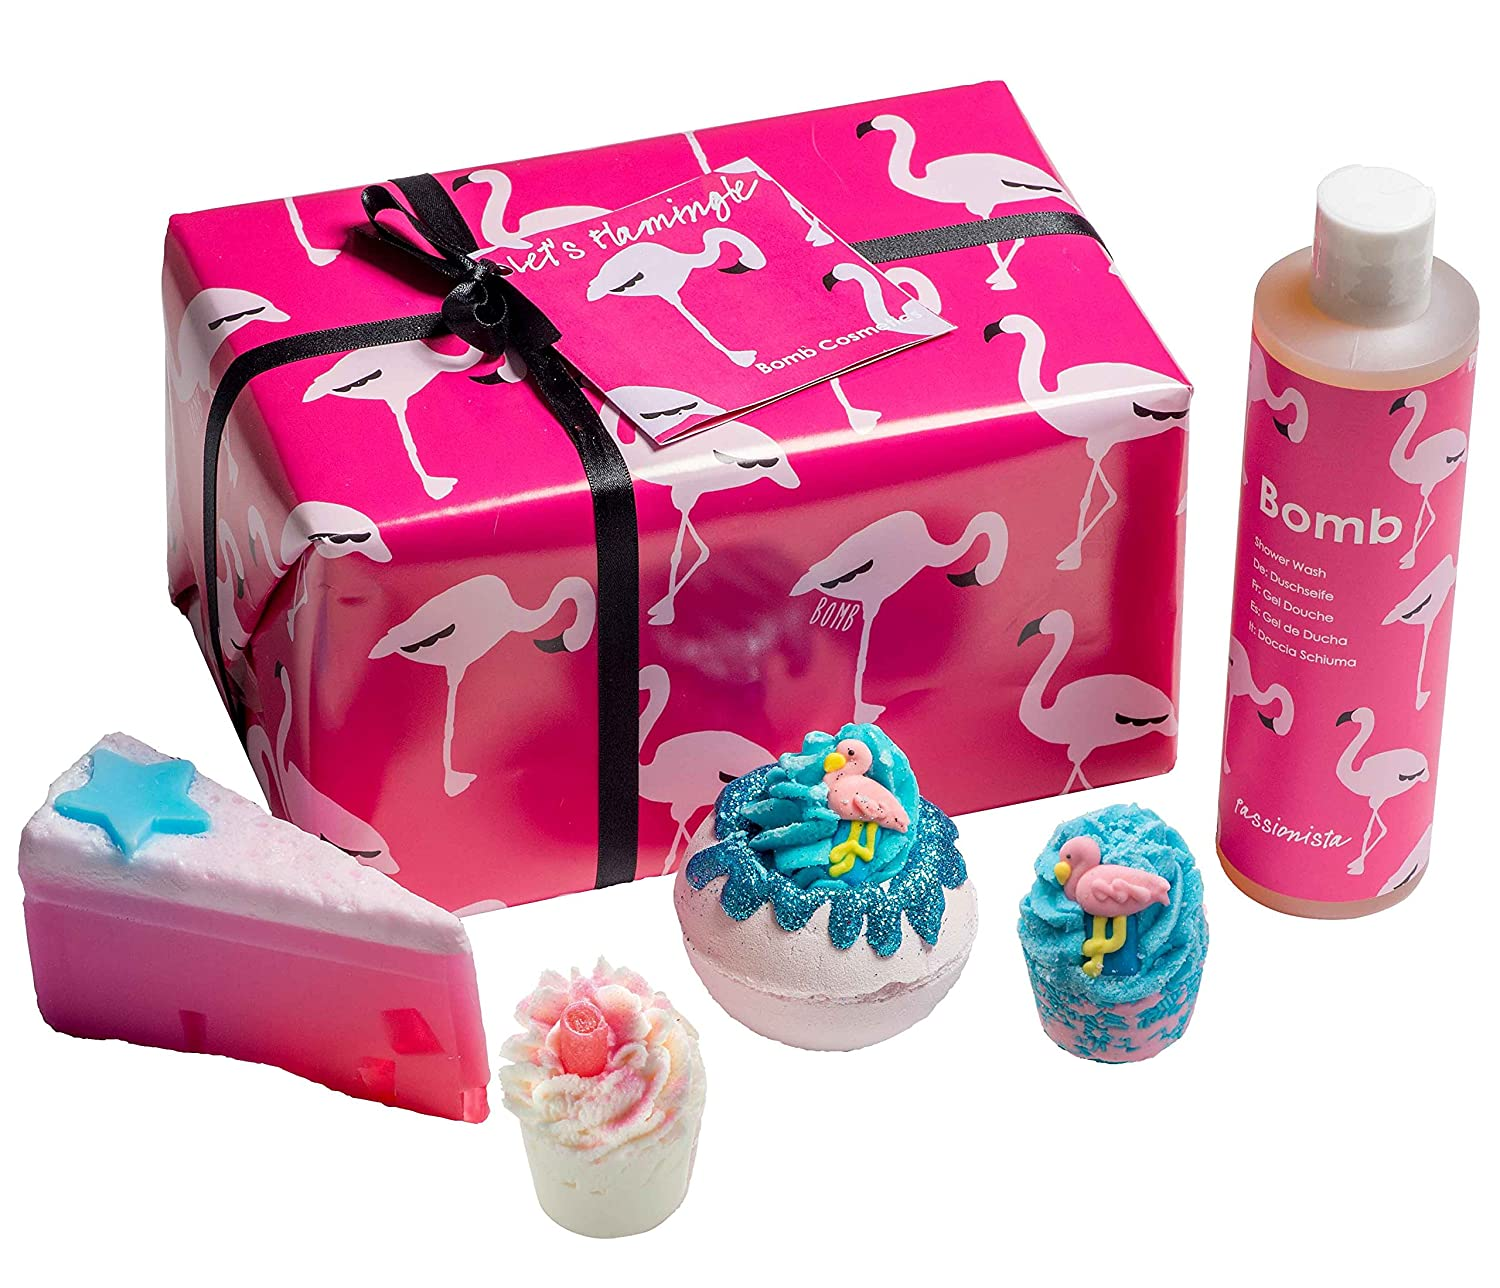 1009abbe388 Bomb Cosmetics Let's Flamingle Handmade Wrapped Gift Pack: Amazon.co.uk:  Beauty